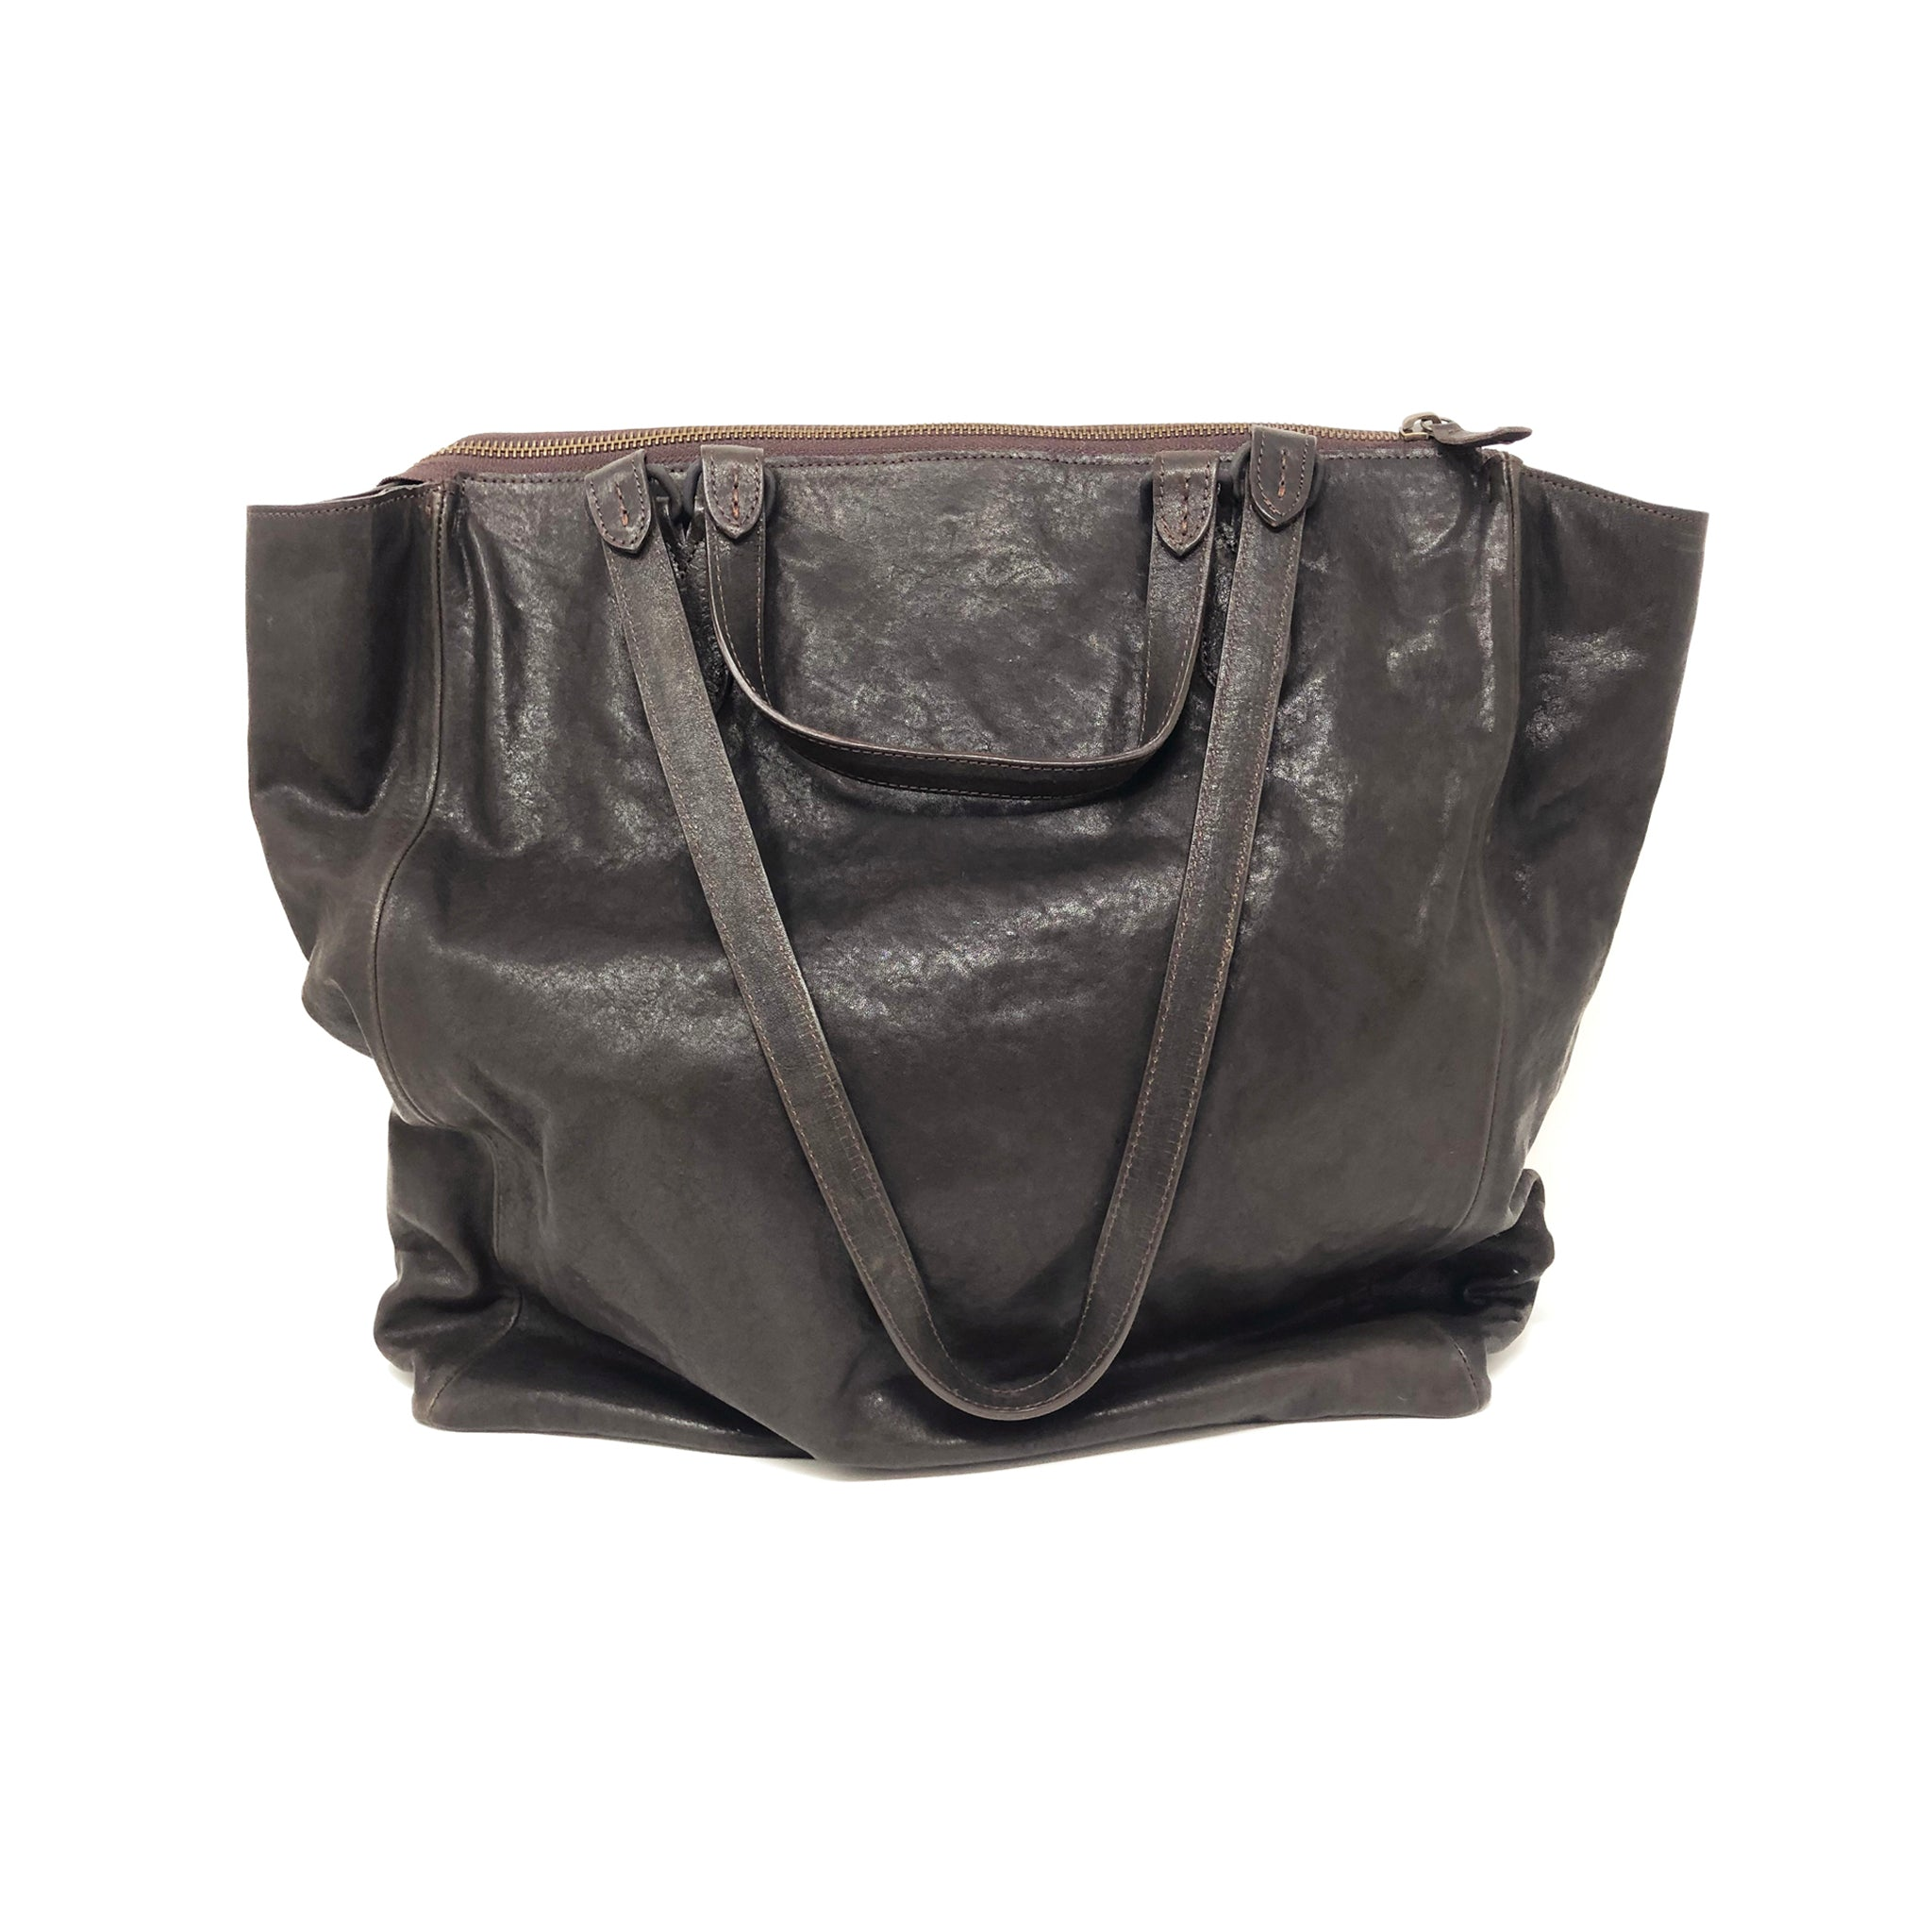 Berlin Leather Bag